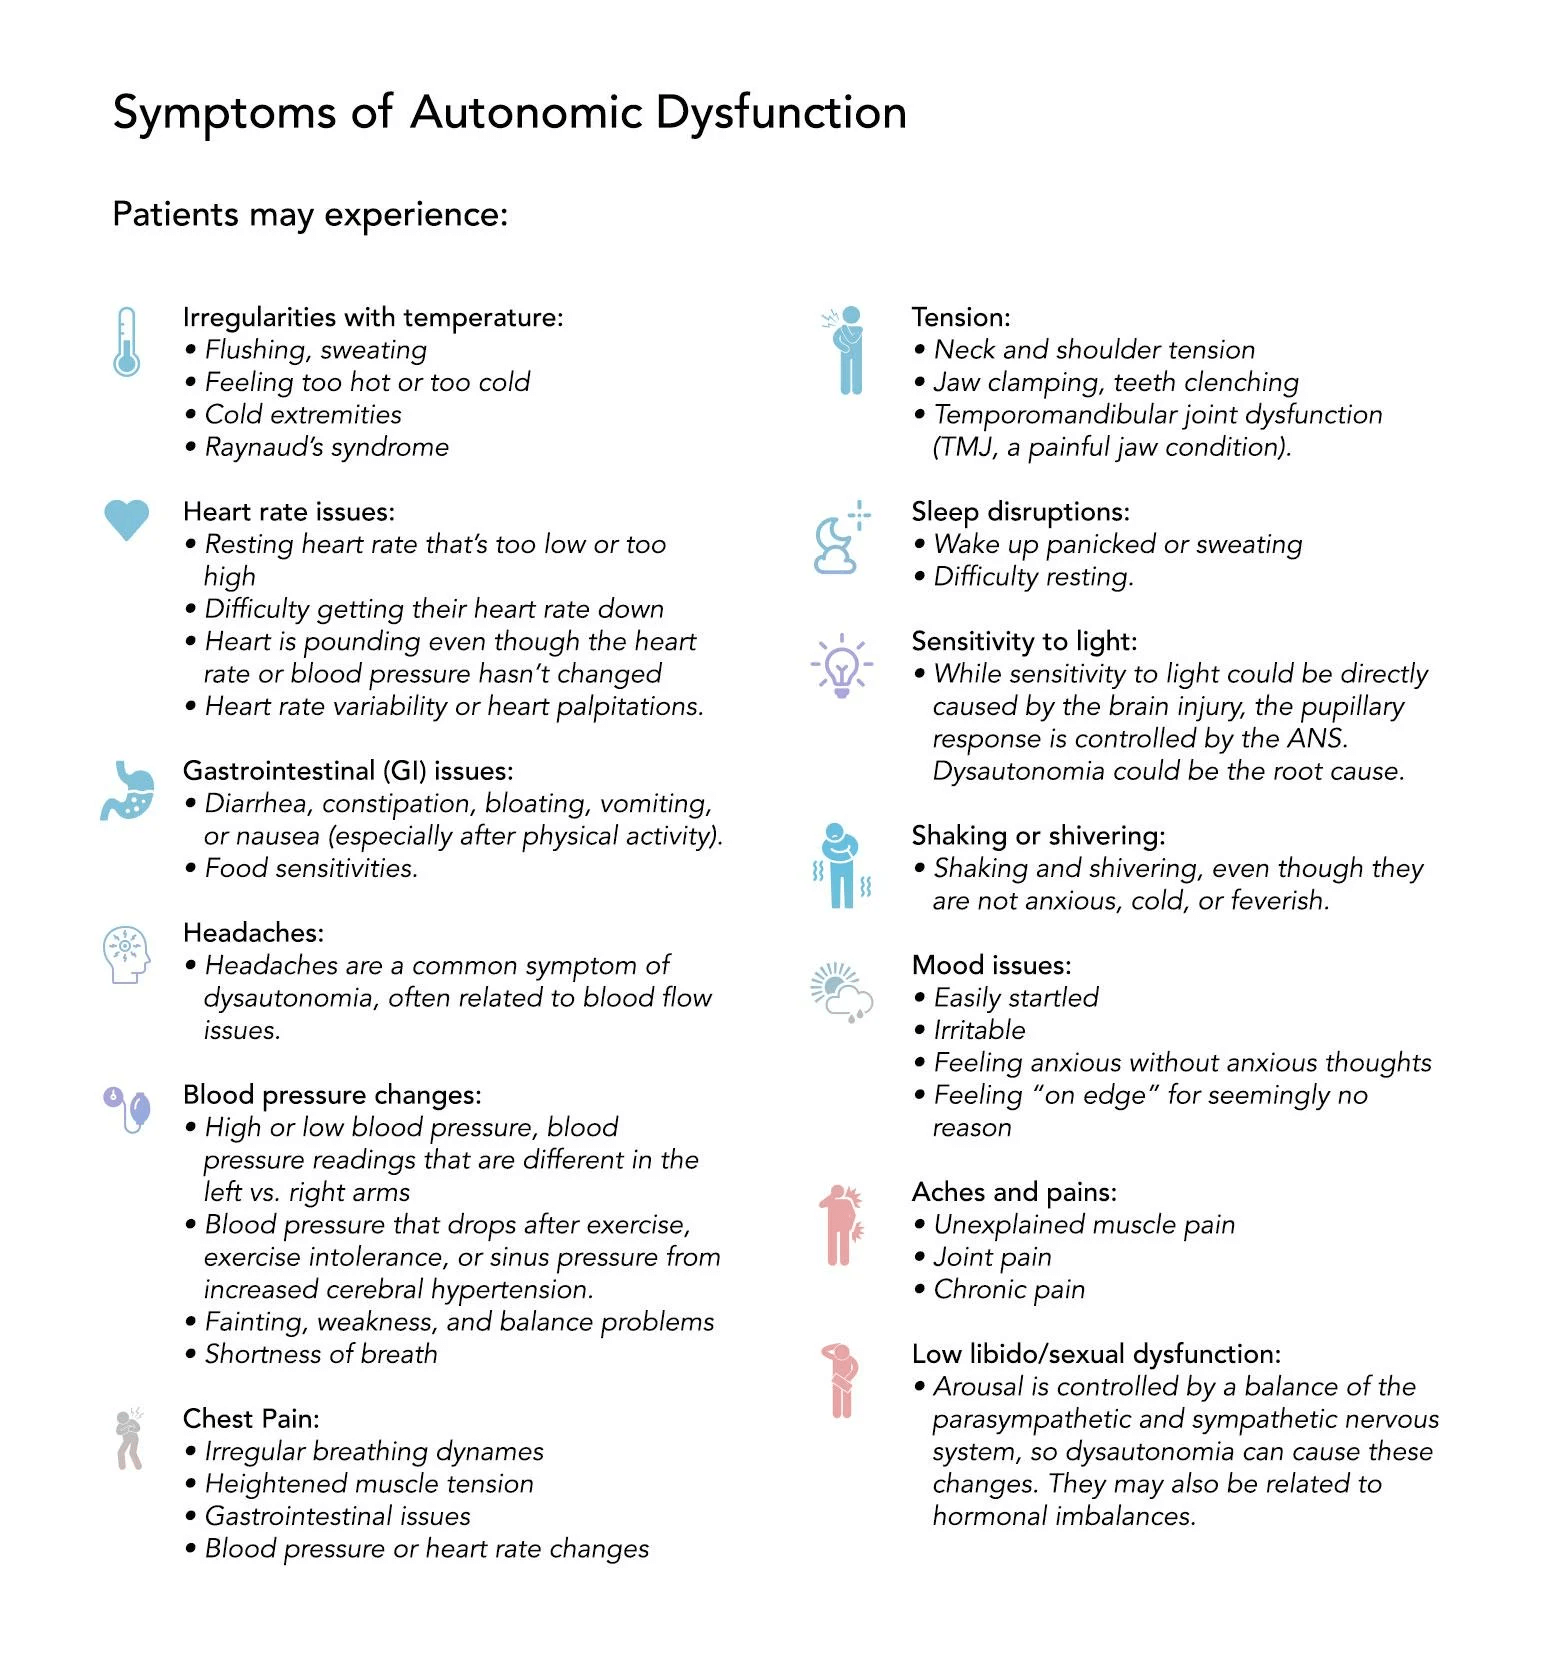 A list of all of the Symptoms of Autonomic Dysfunction